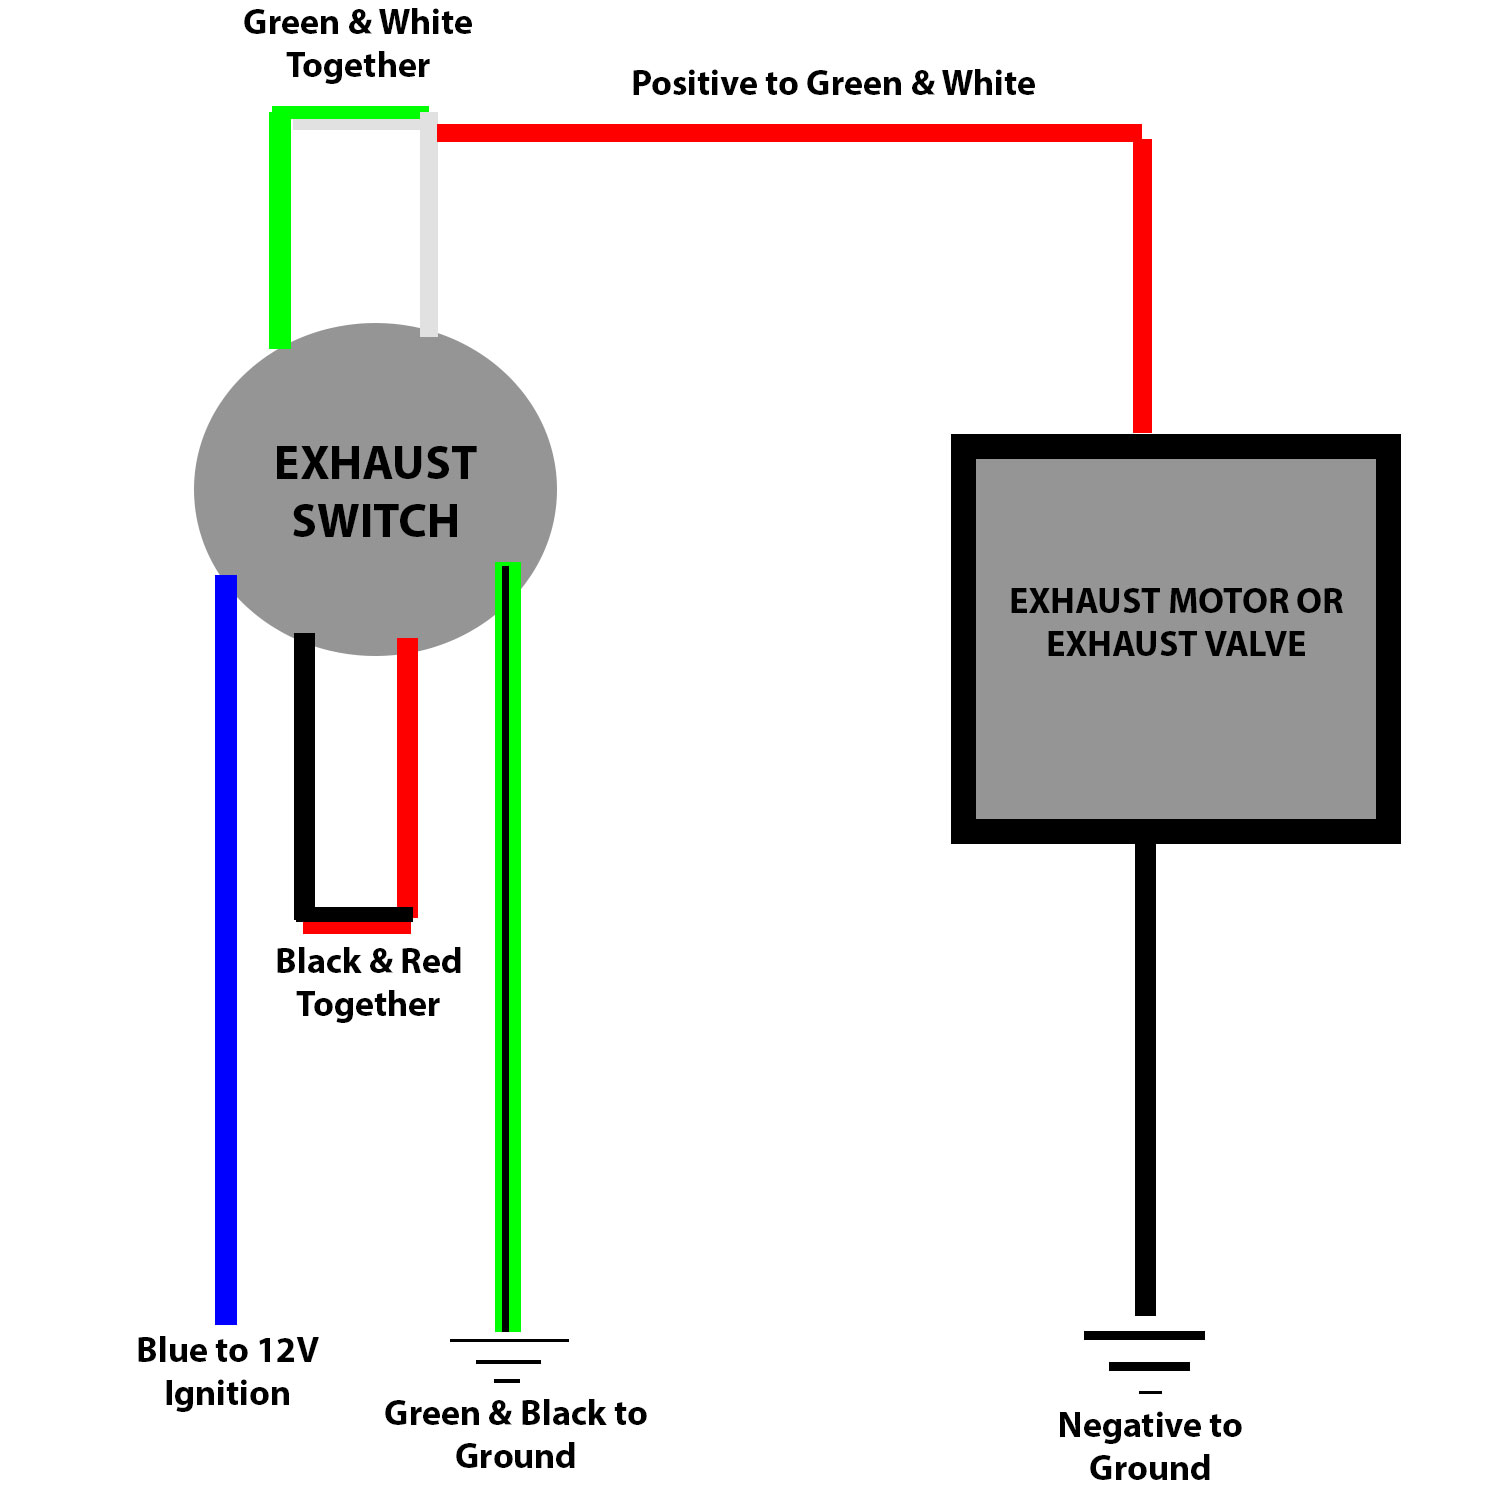 exhaust switch 2 exhaust valve push button switch (switch only) qtp exhaust cutout wiring diagram at gsmportal.co